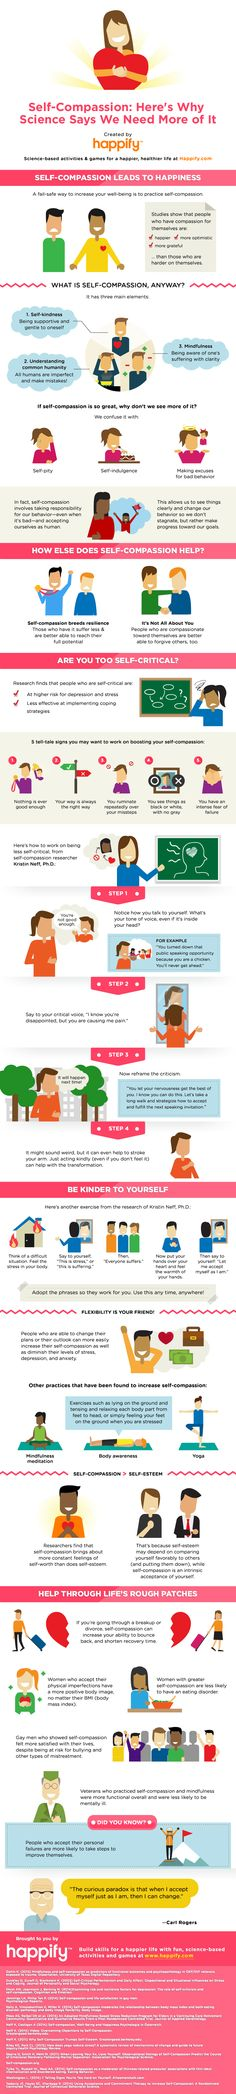 Self Compassion, Forgiveness, Kindness Tips Infographic